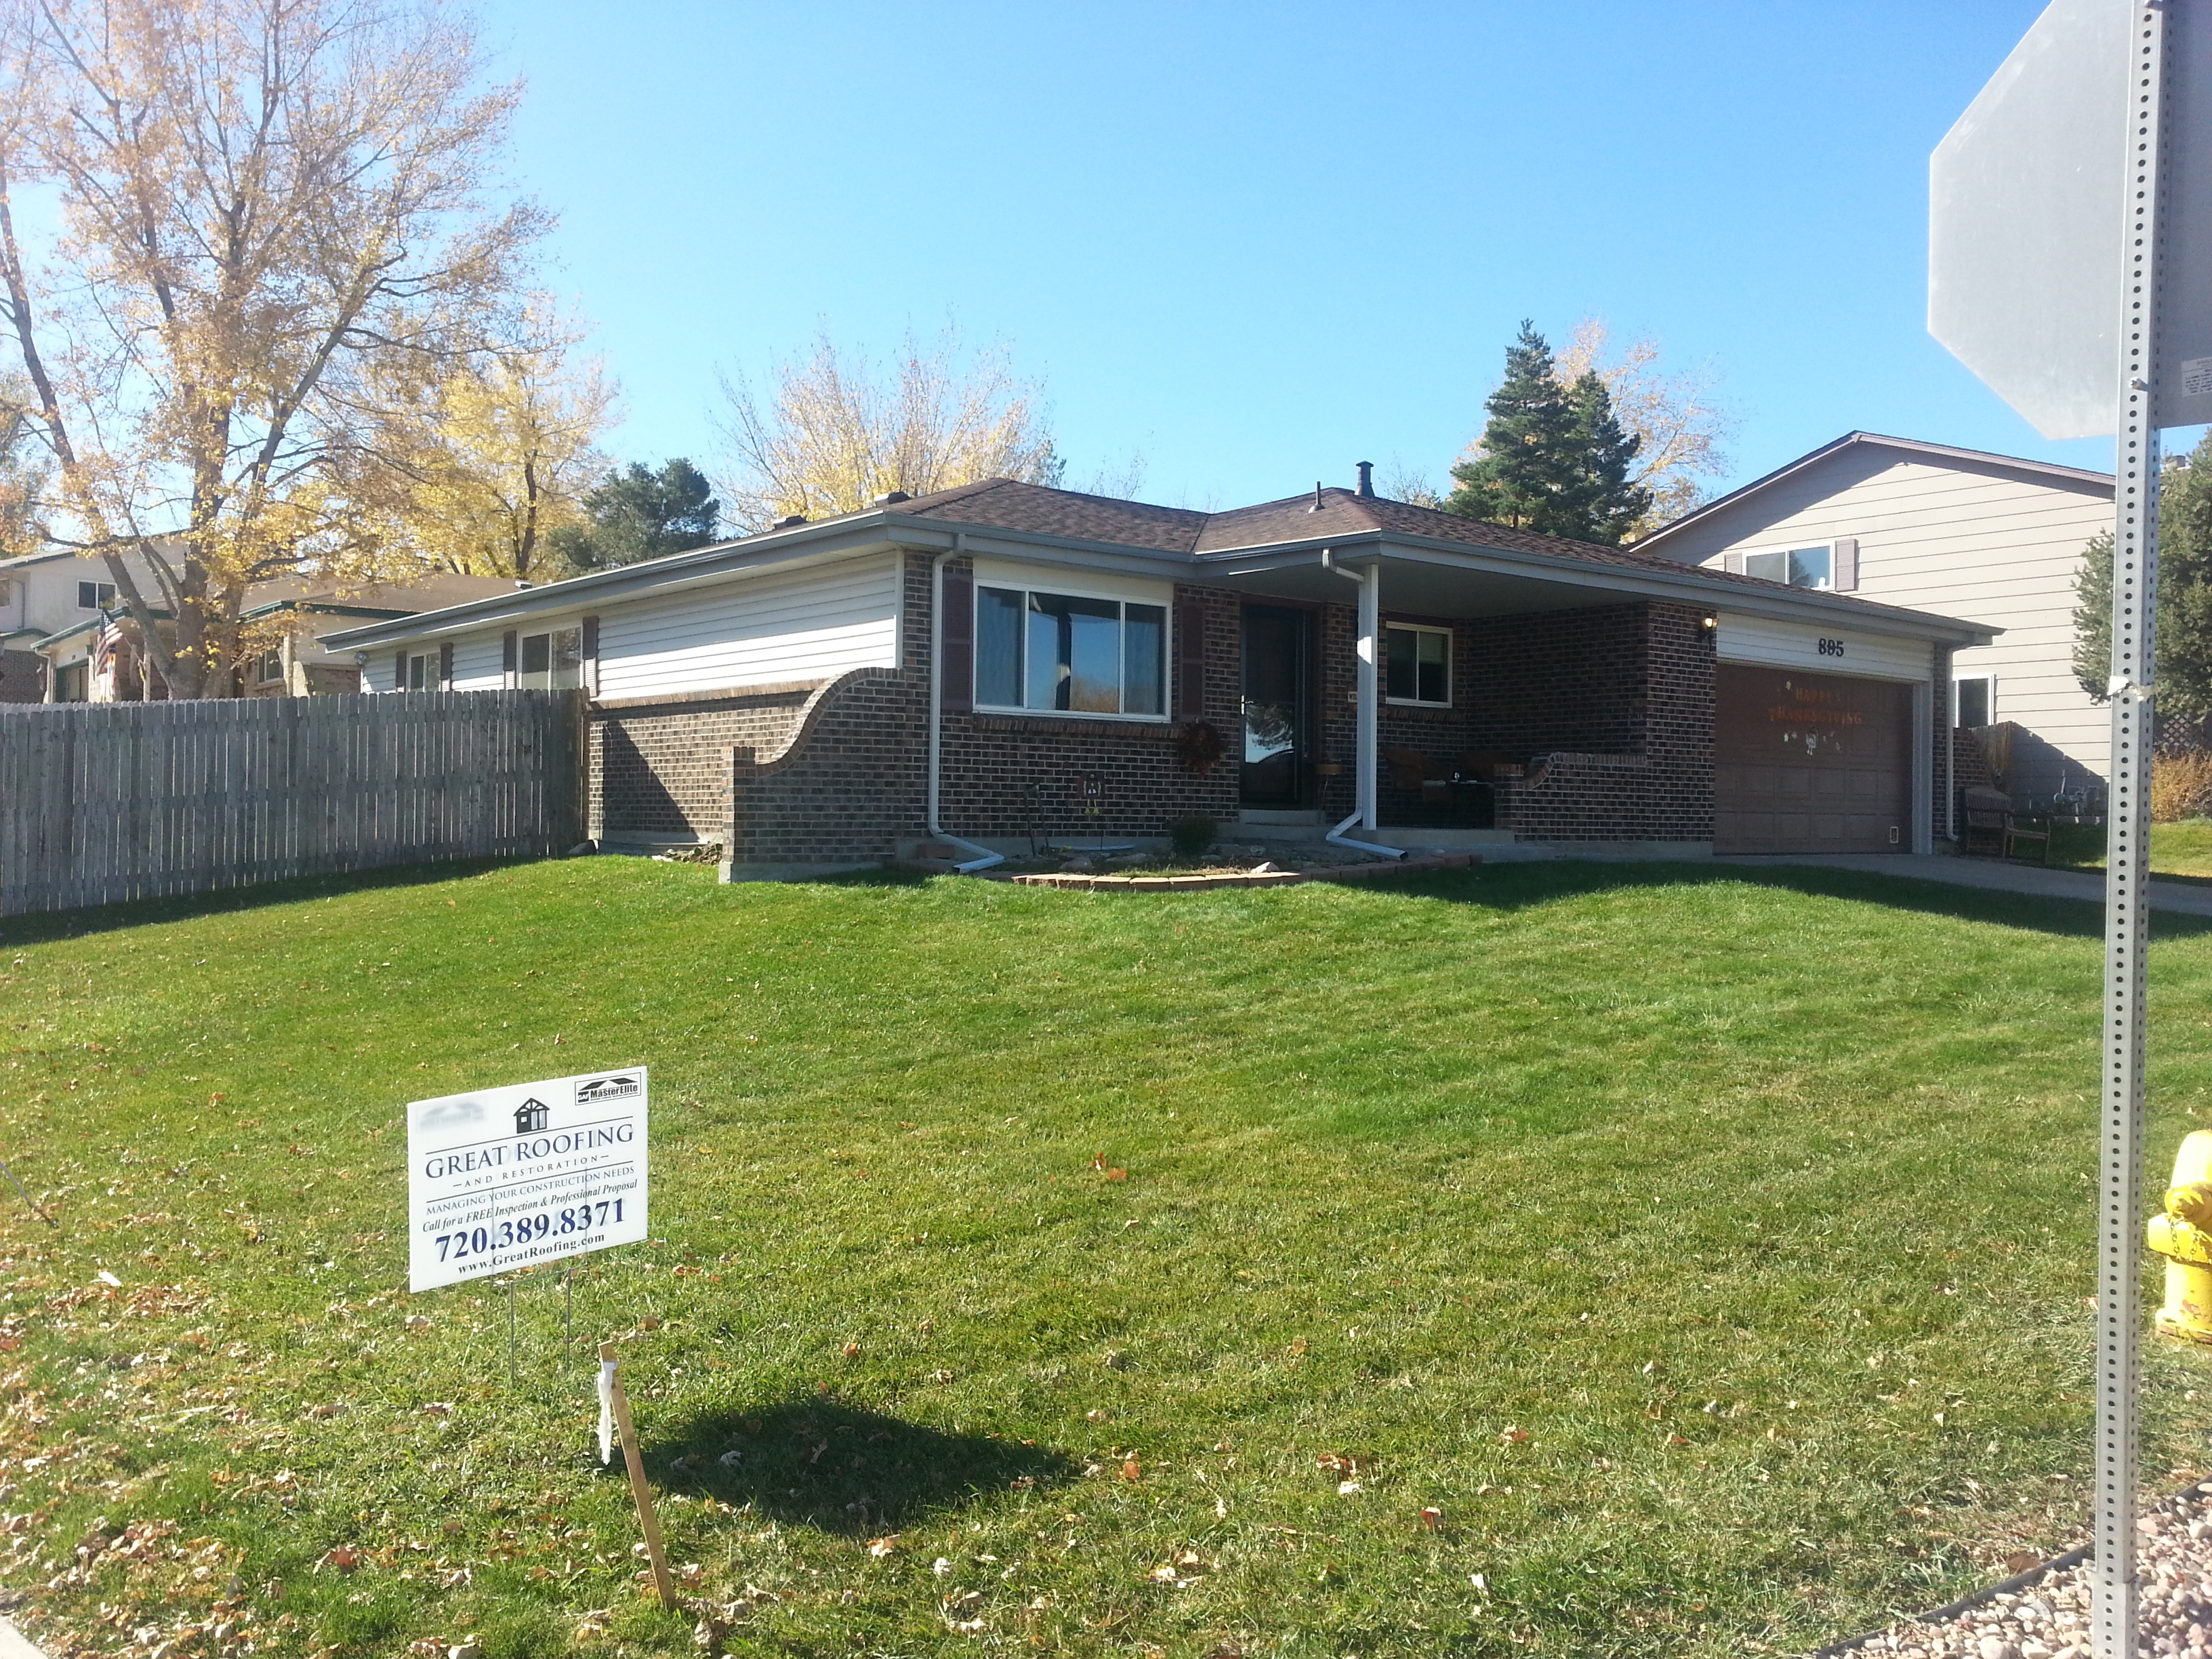 Roofing Projects In Colorado Amp Ohio Great Roofing